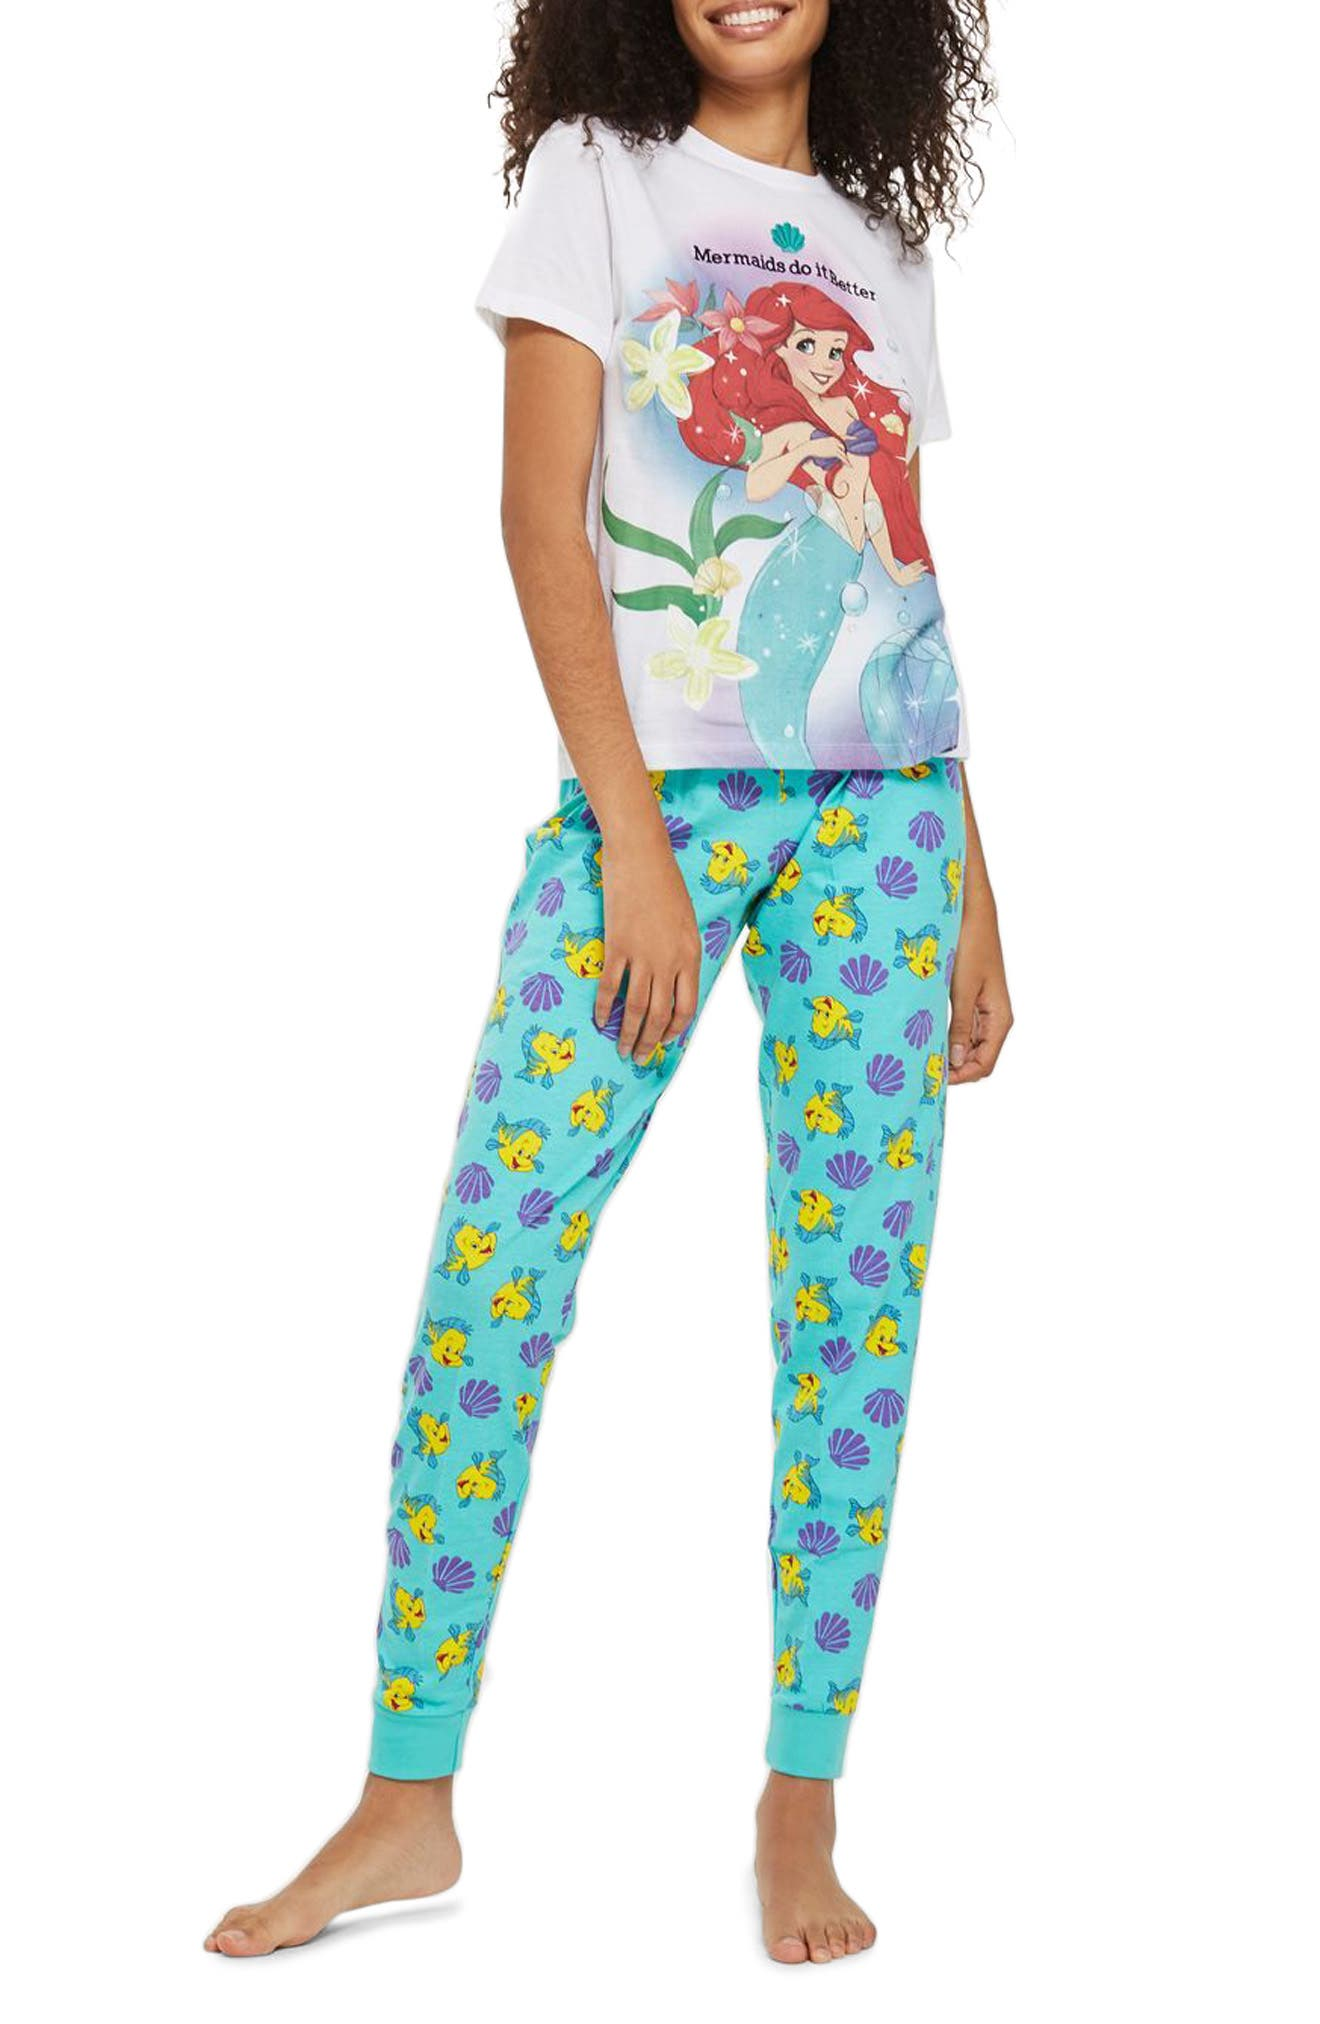 The Little Mermaid - Mermaids Do It Better Pajamas,                         Main,                         color,